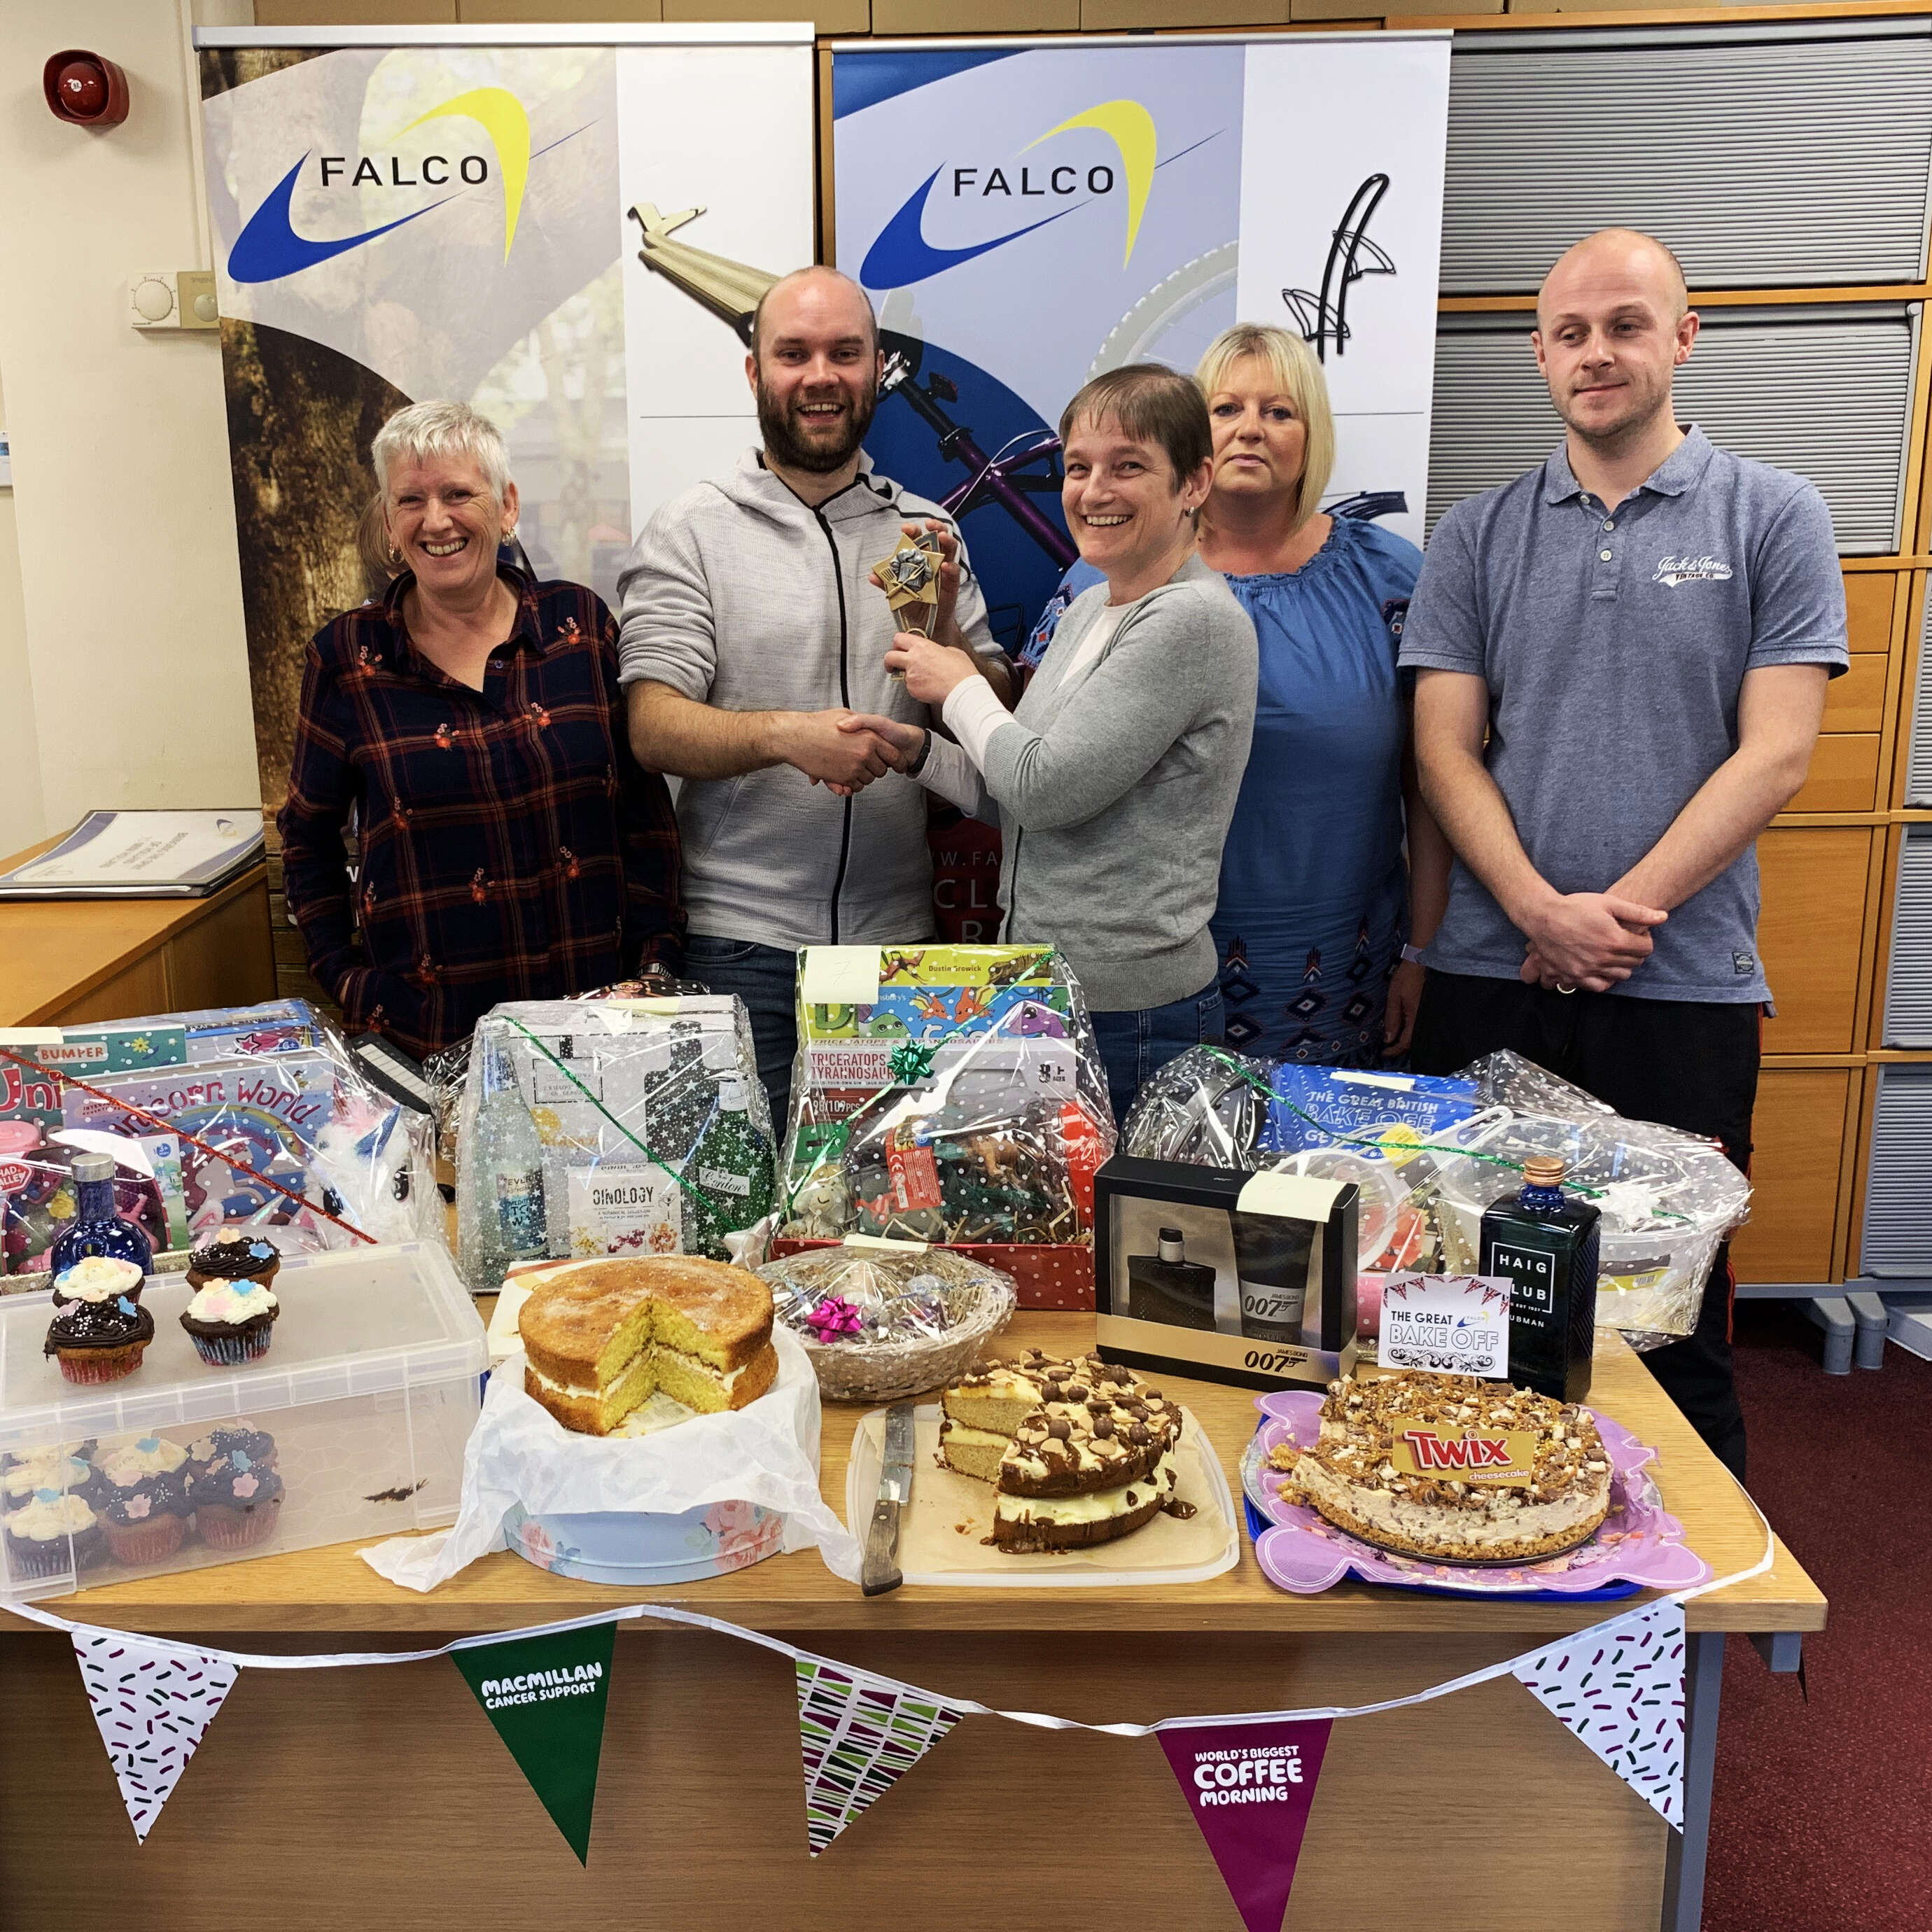 MacMillan Coffee Morning - Falco UK Ltd